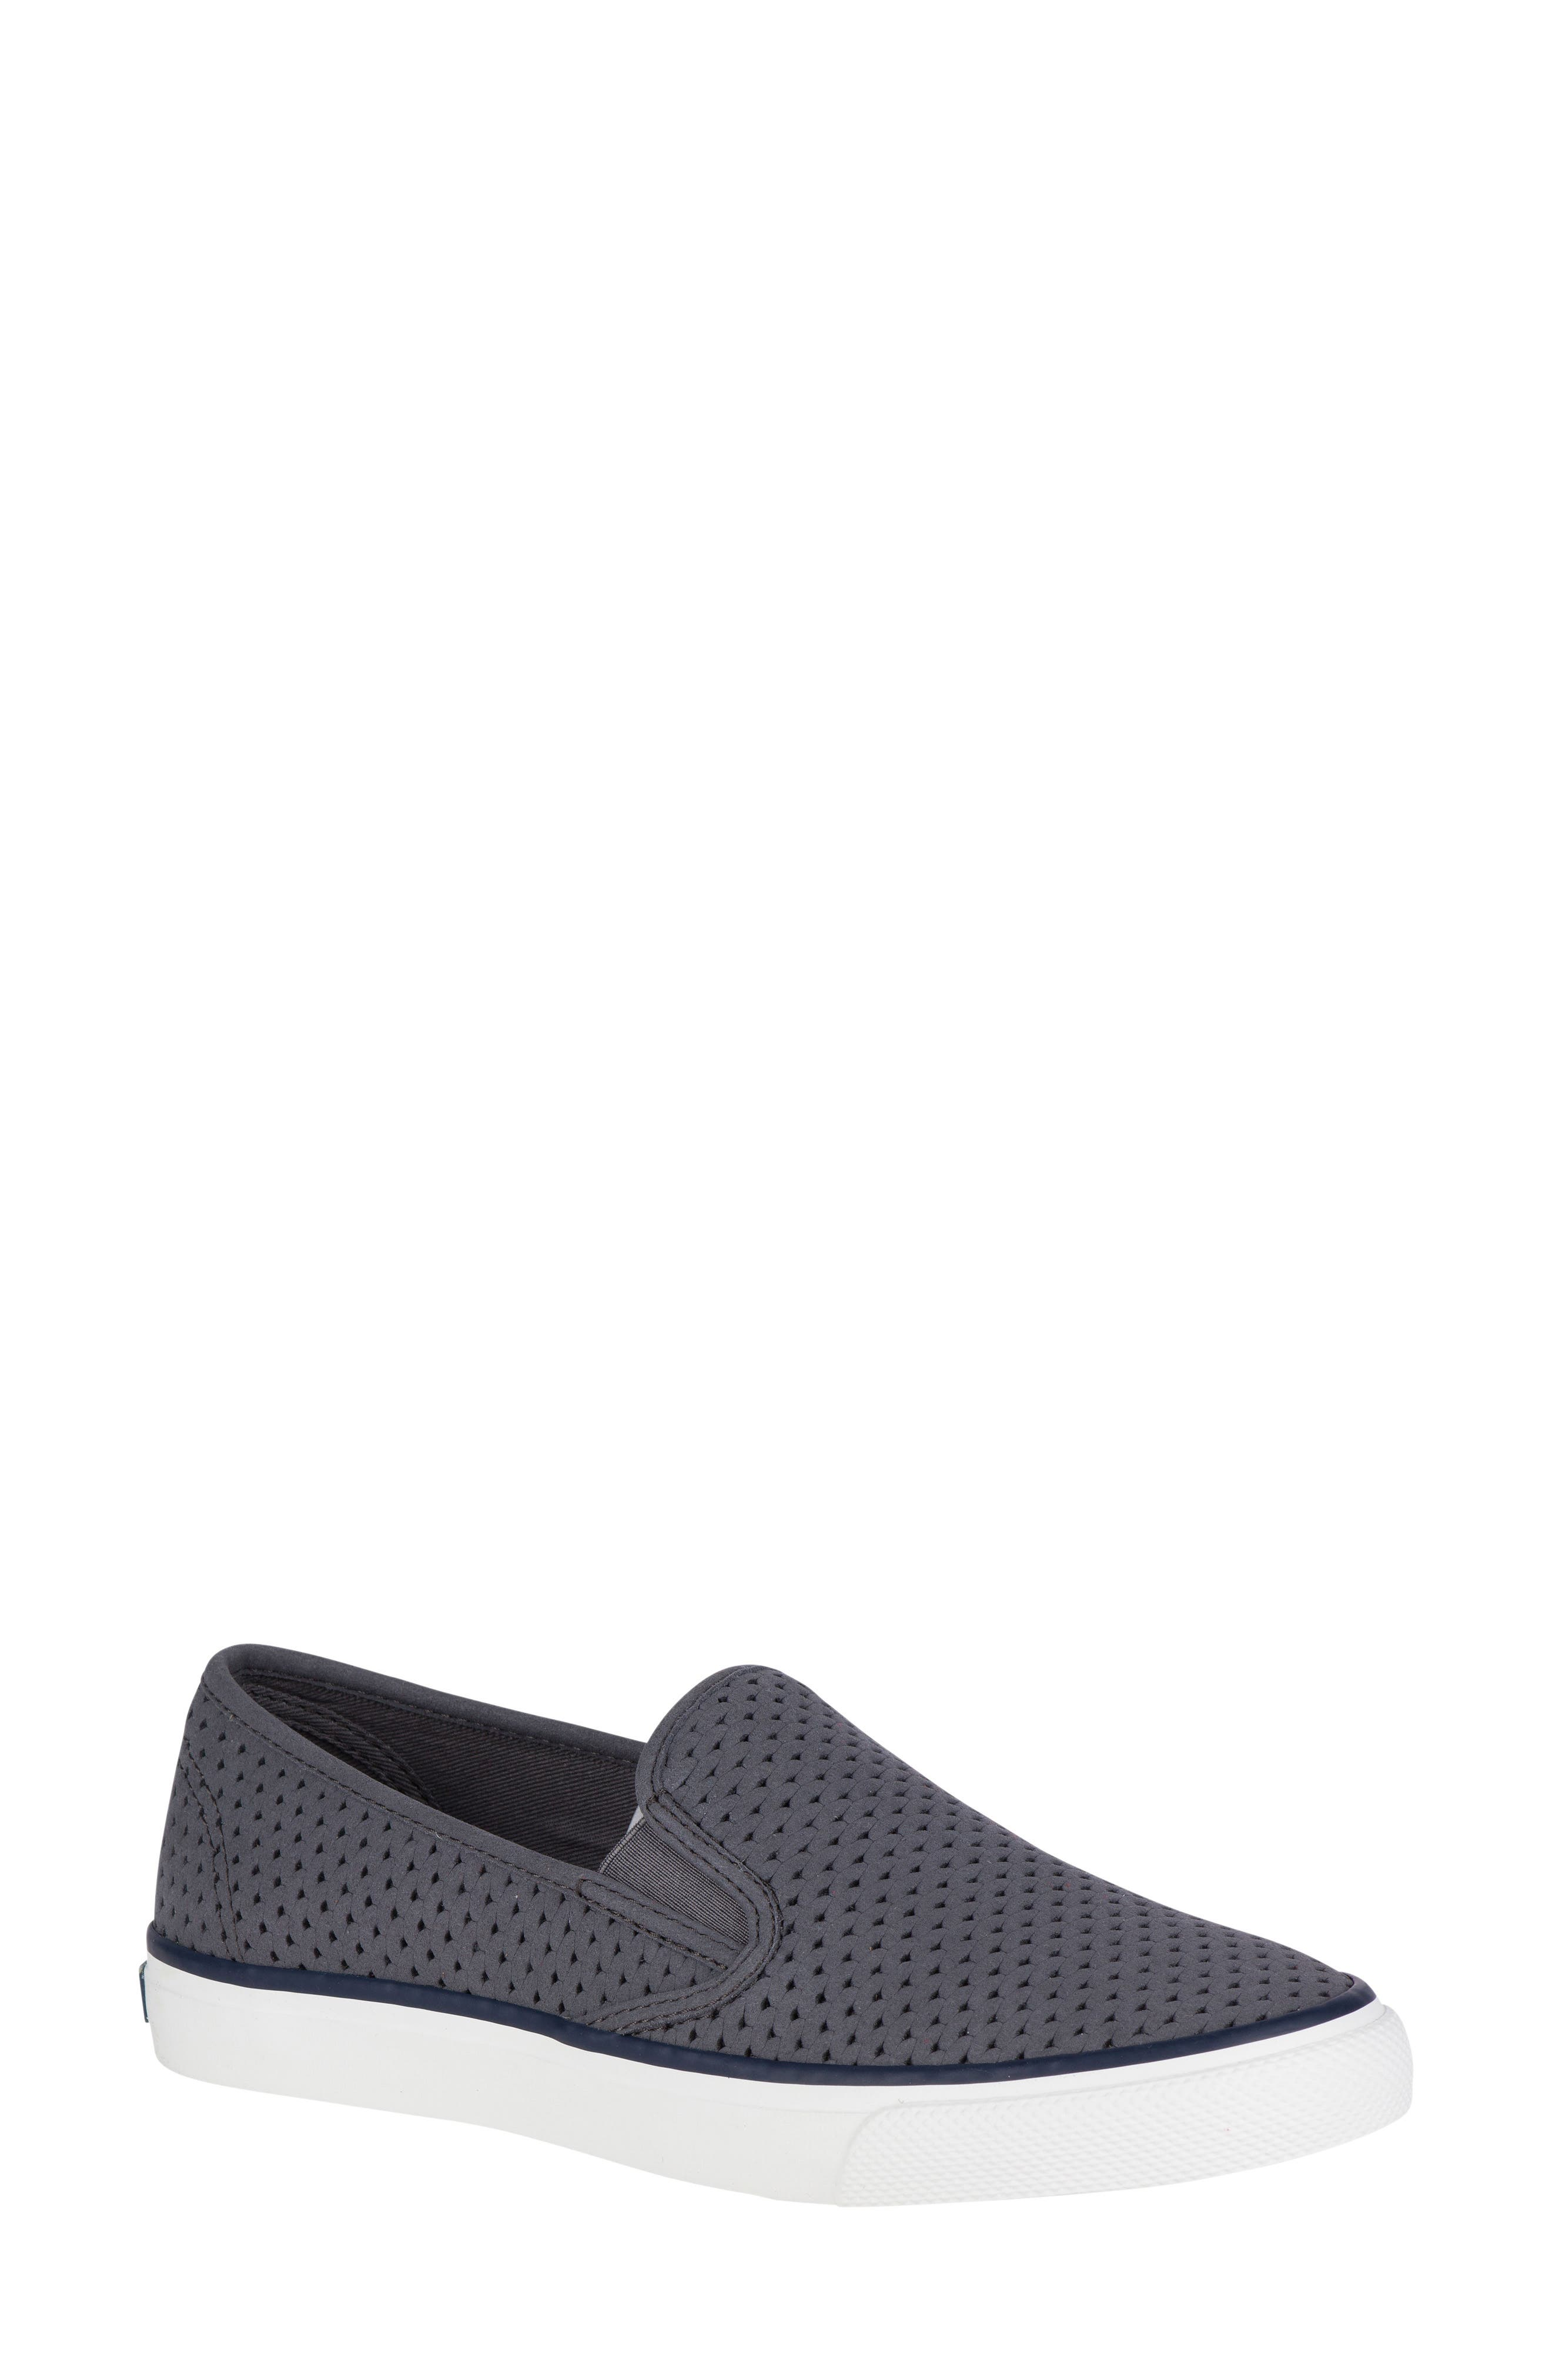 Sperry Seaside Perforated Slip-On Sneaker (Women) (Regular Retail Price: $74.95)